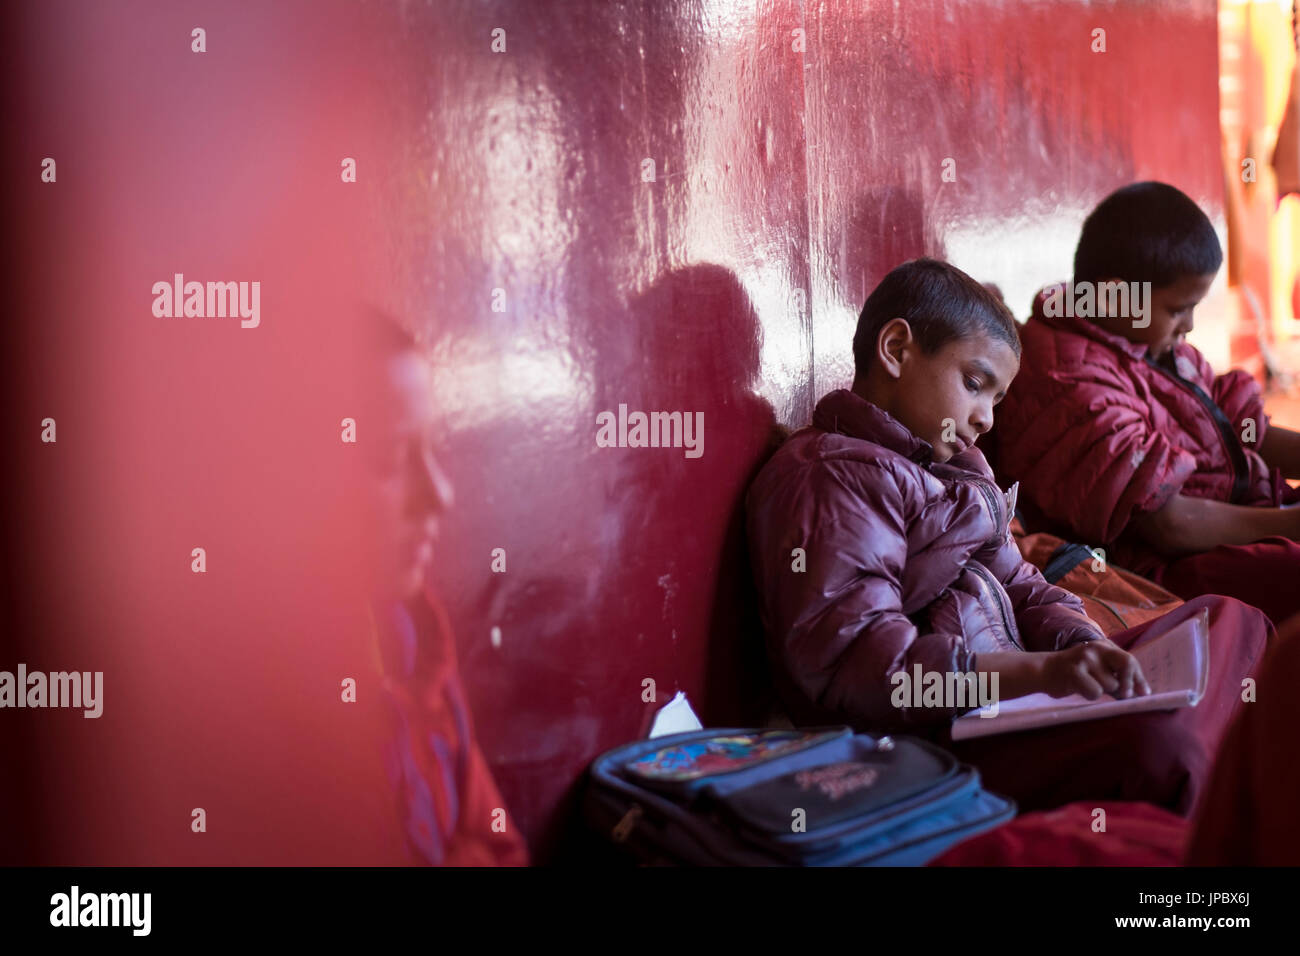 Matho Monastery, Indus Valley, Ladakh, India, Asia. Monks learning in the  monastery school. - Stock Image